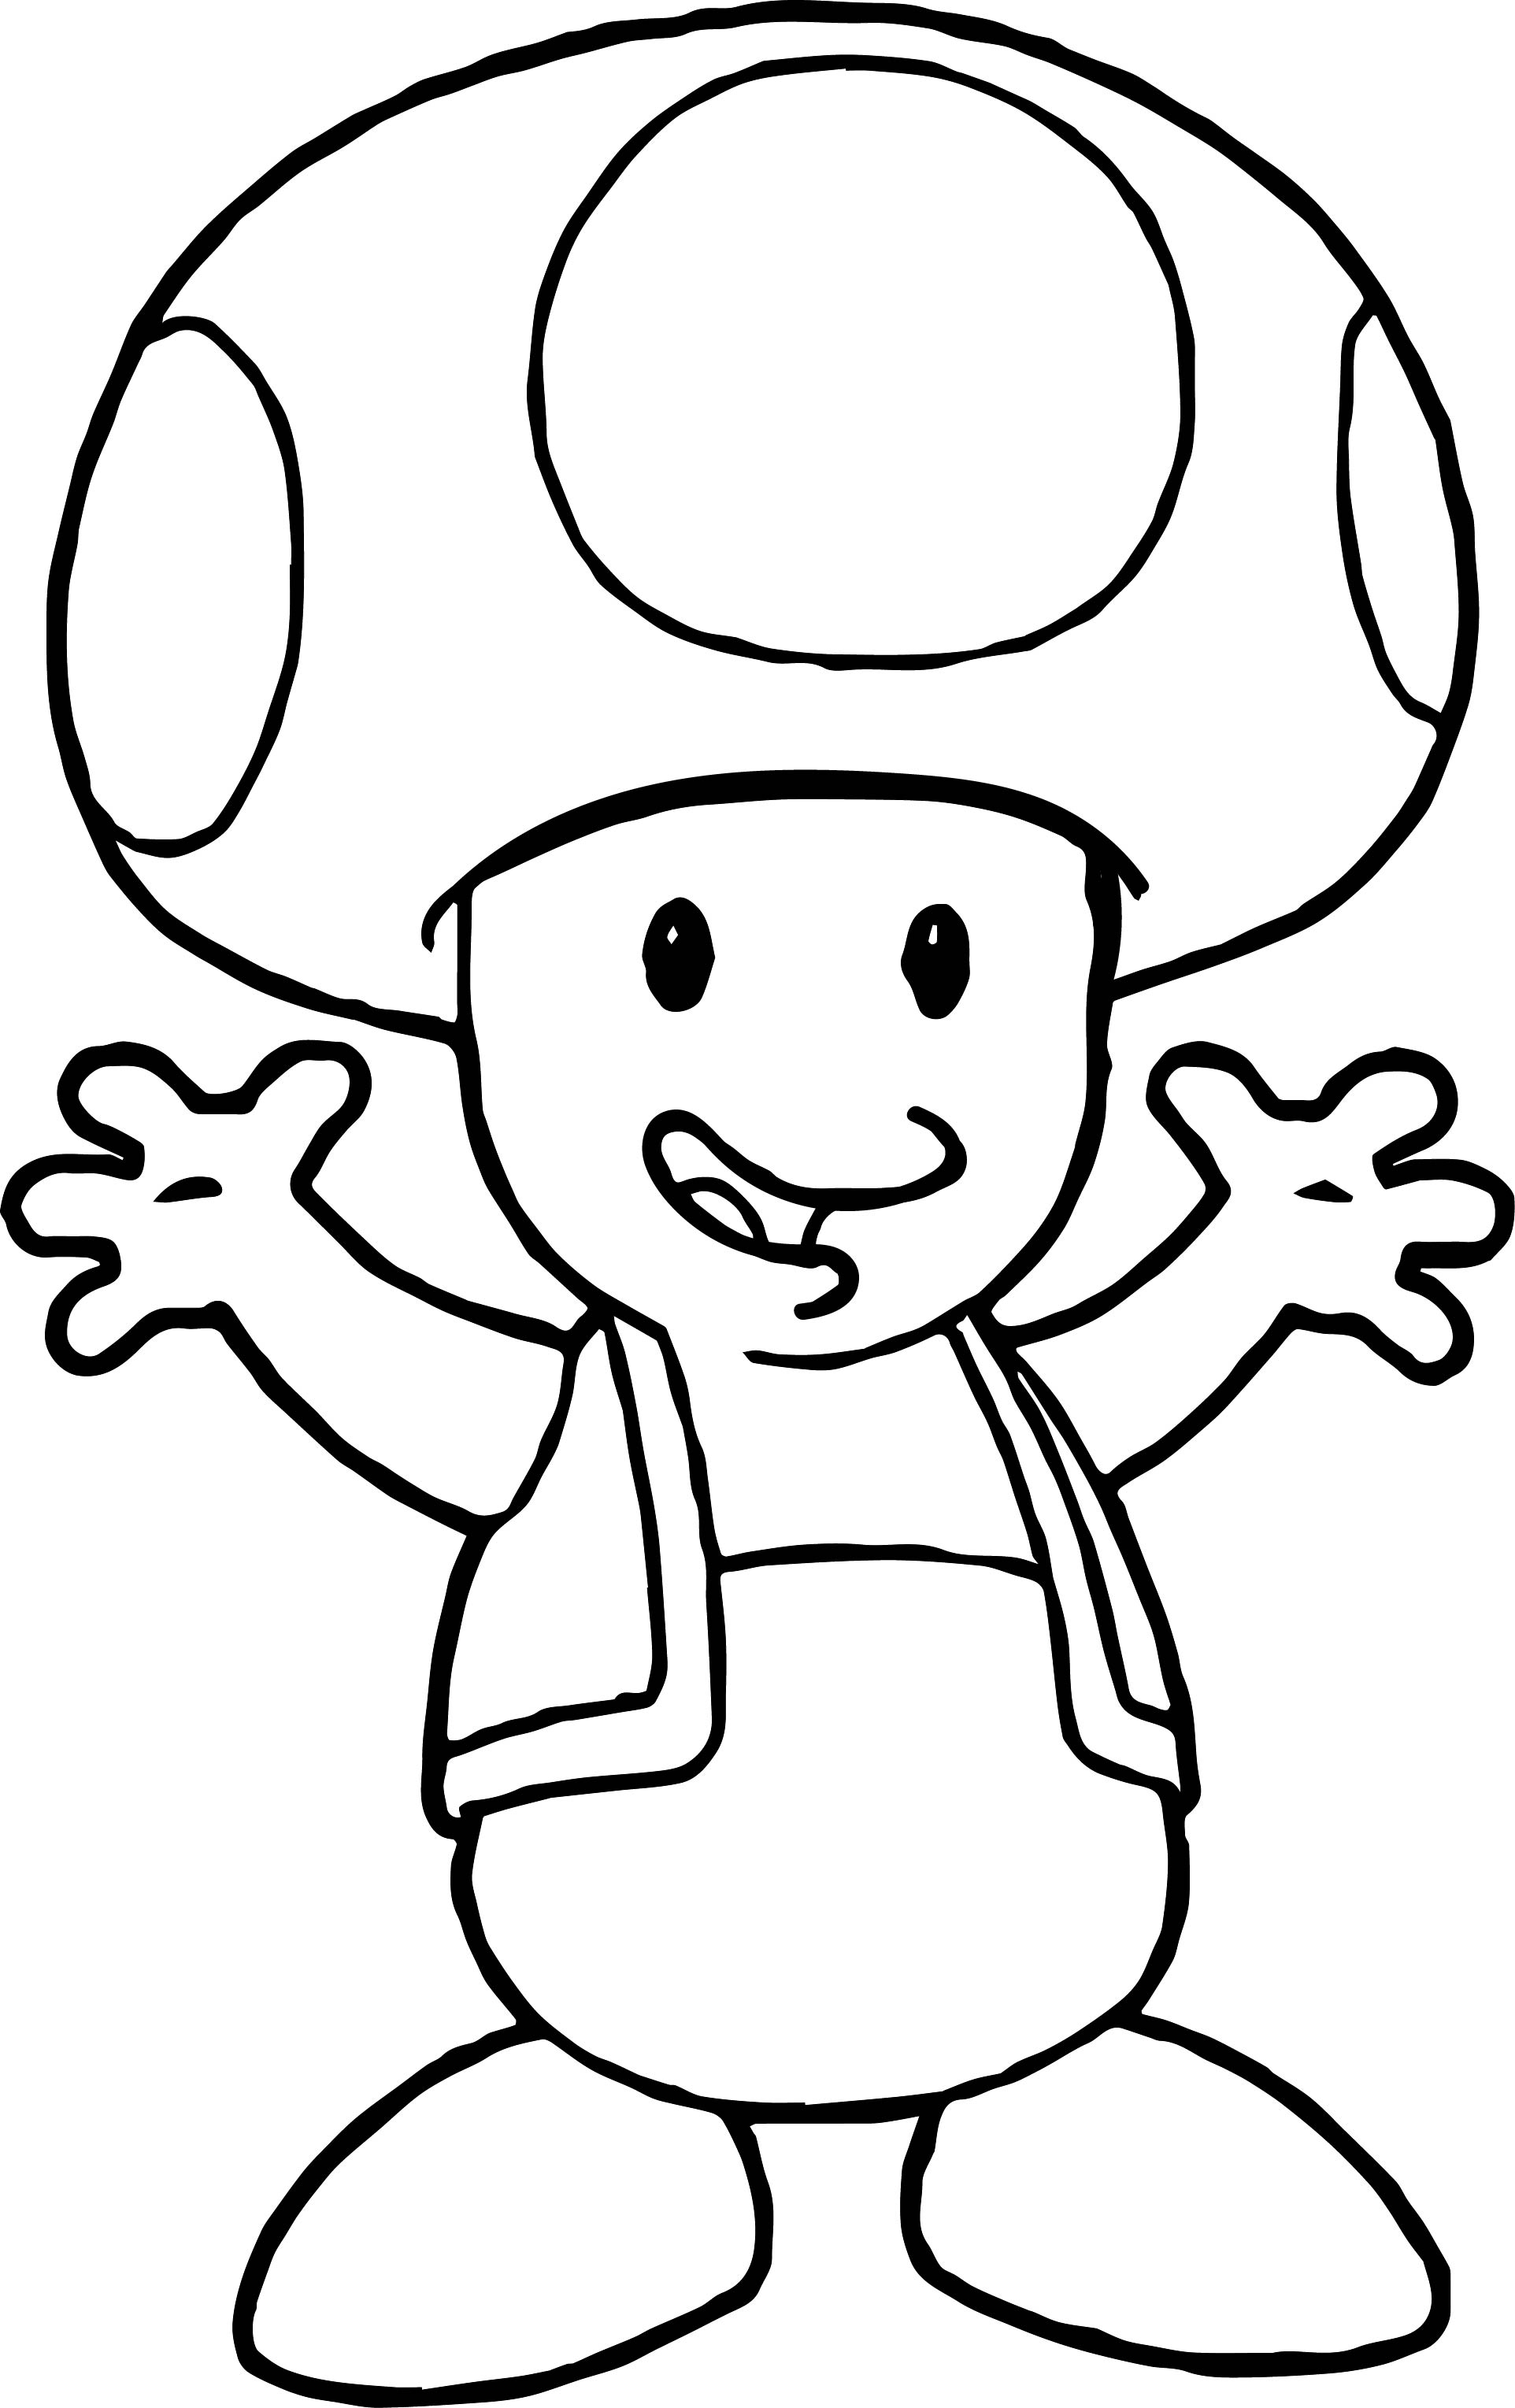 Baby Bowser Free Coloring Pages